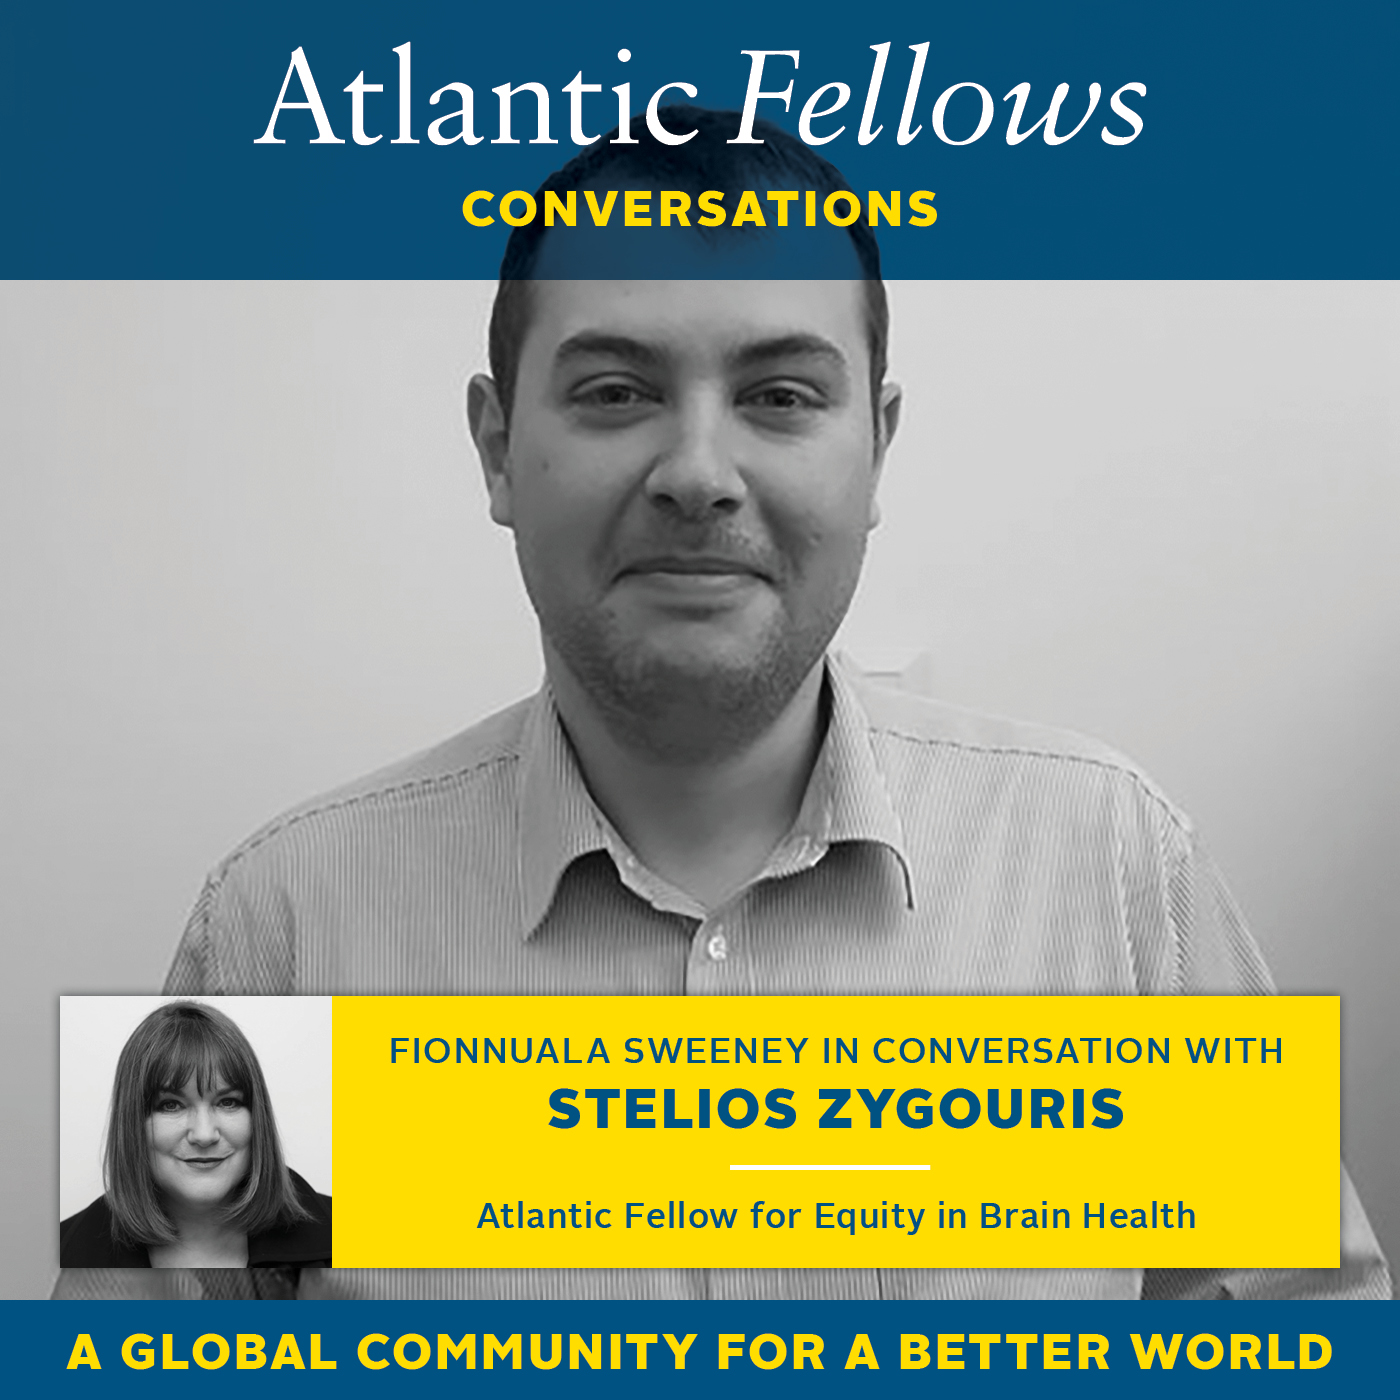 Stelios Zygouris: Atlantic Fellow for Equity in Brain Health